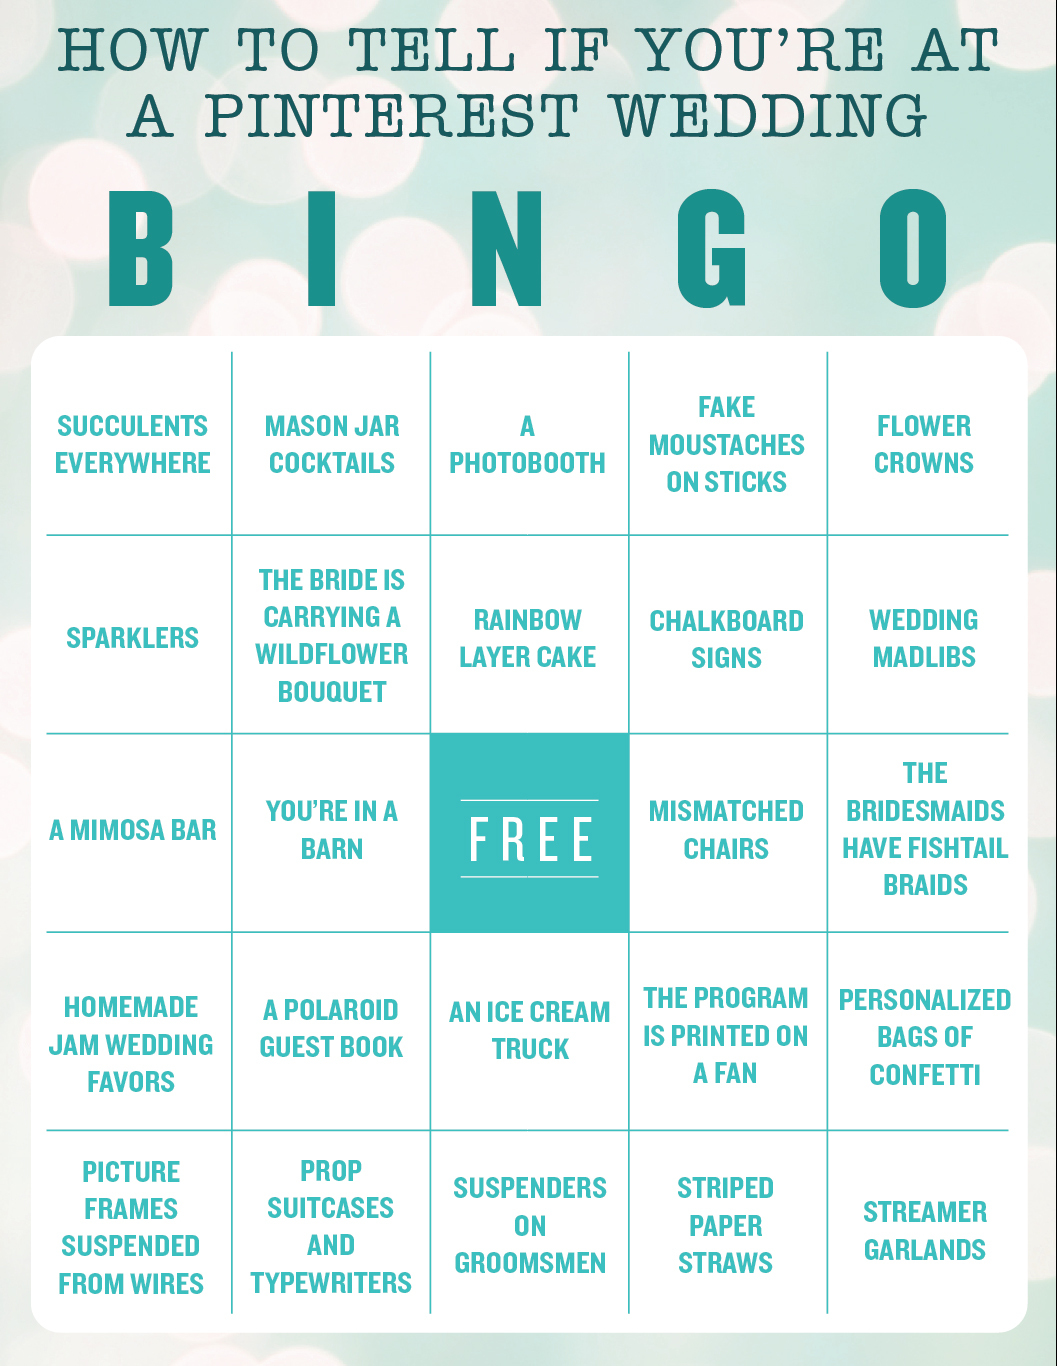 Pinterest Wedding Bingo: The Ultimate Tweeness Test - Racked NY